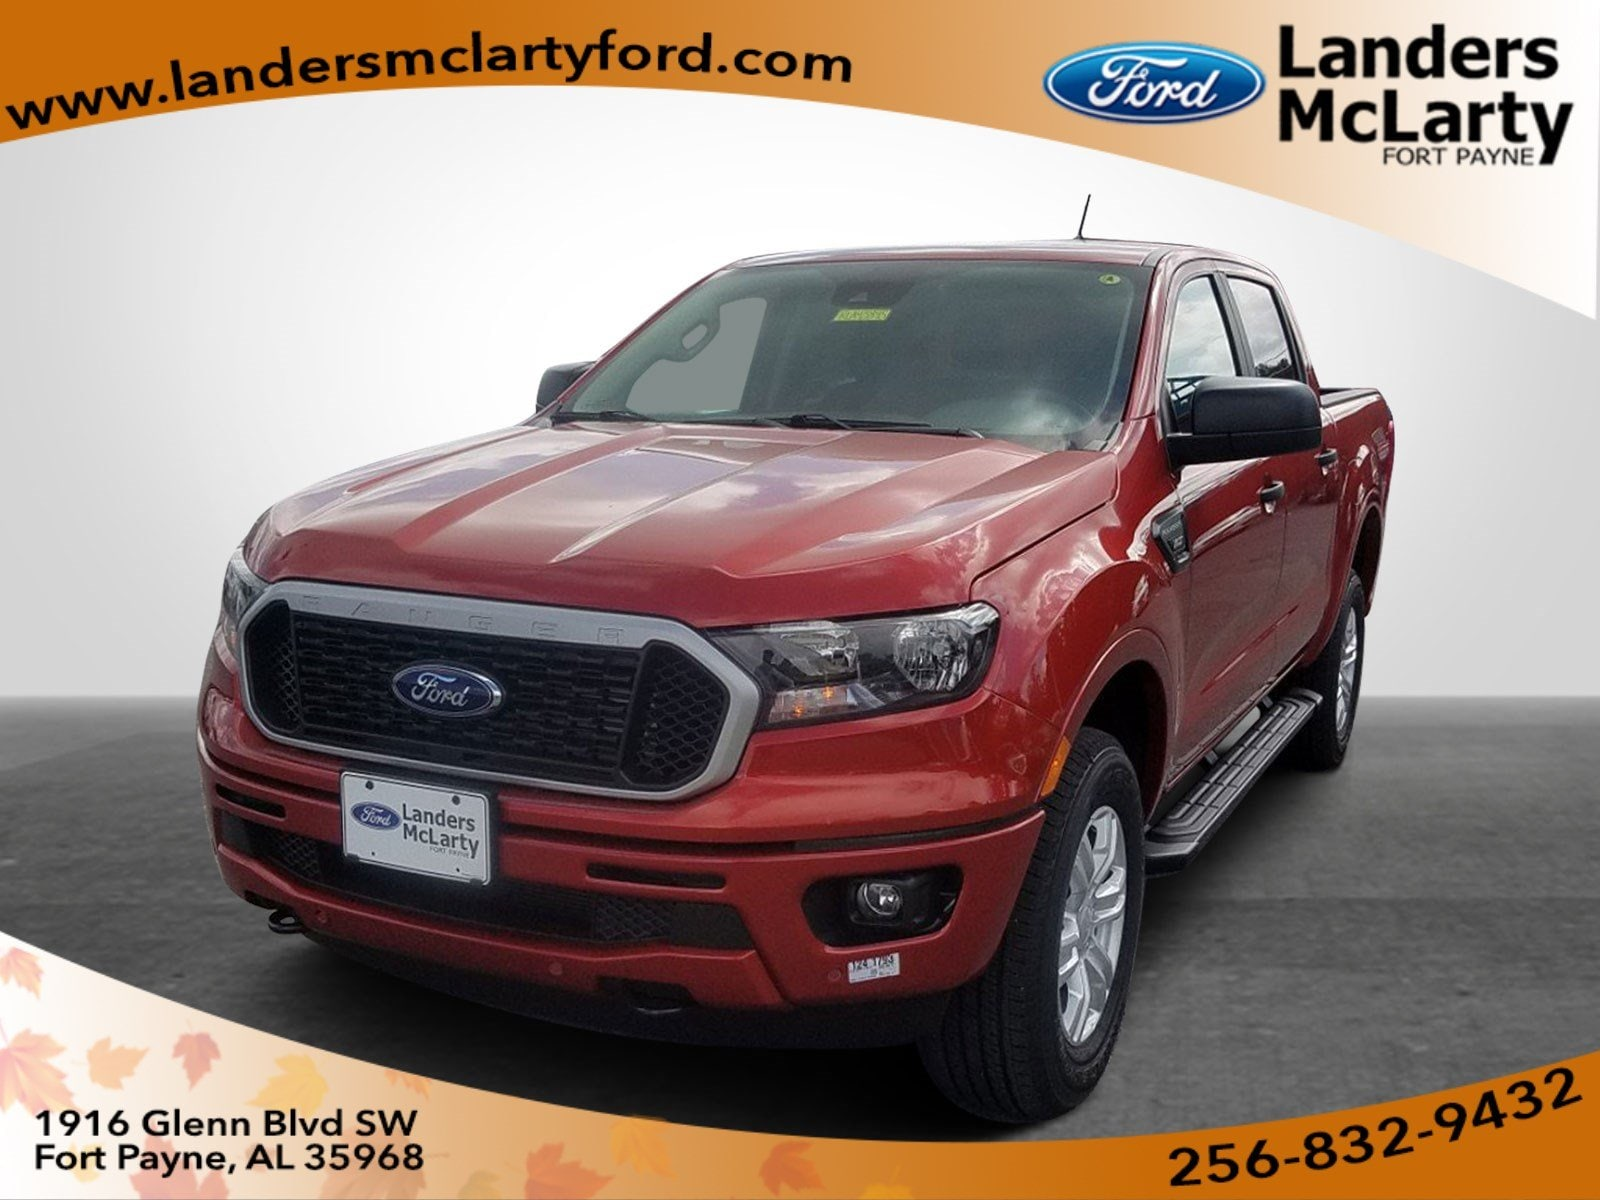 Landers Mclarty Ford >> New 2019 Ford Ranger For Sale At Landers Mclarty Ford Of Fort Payne